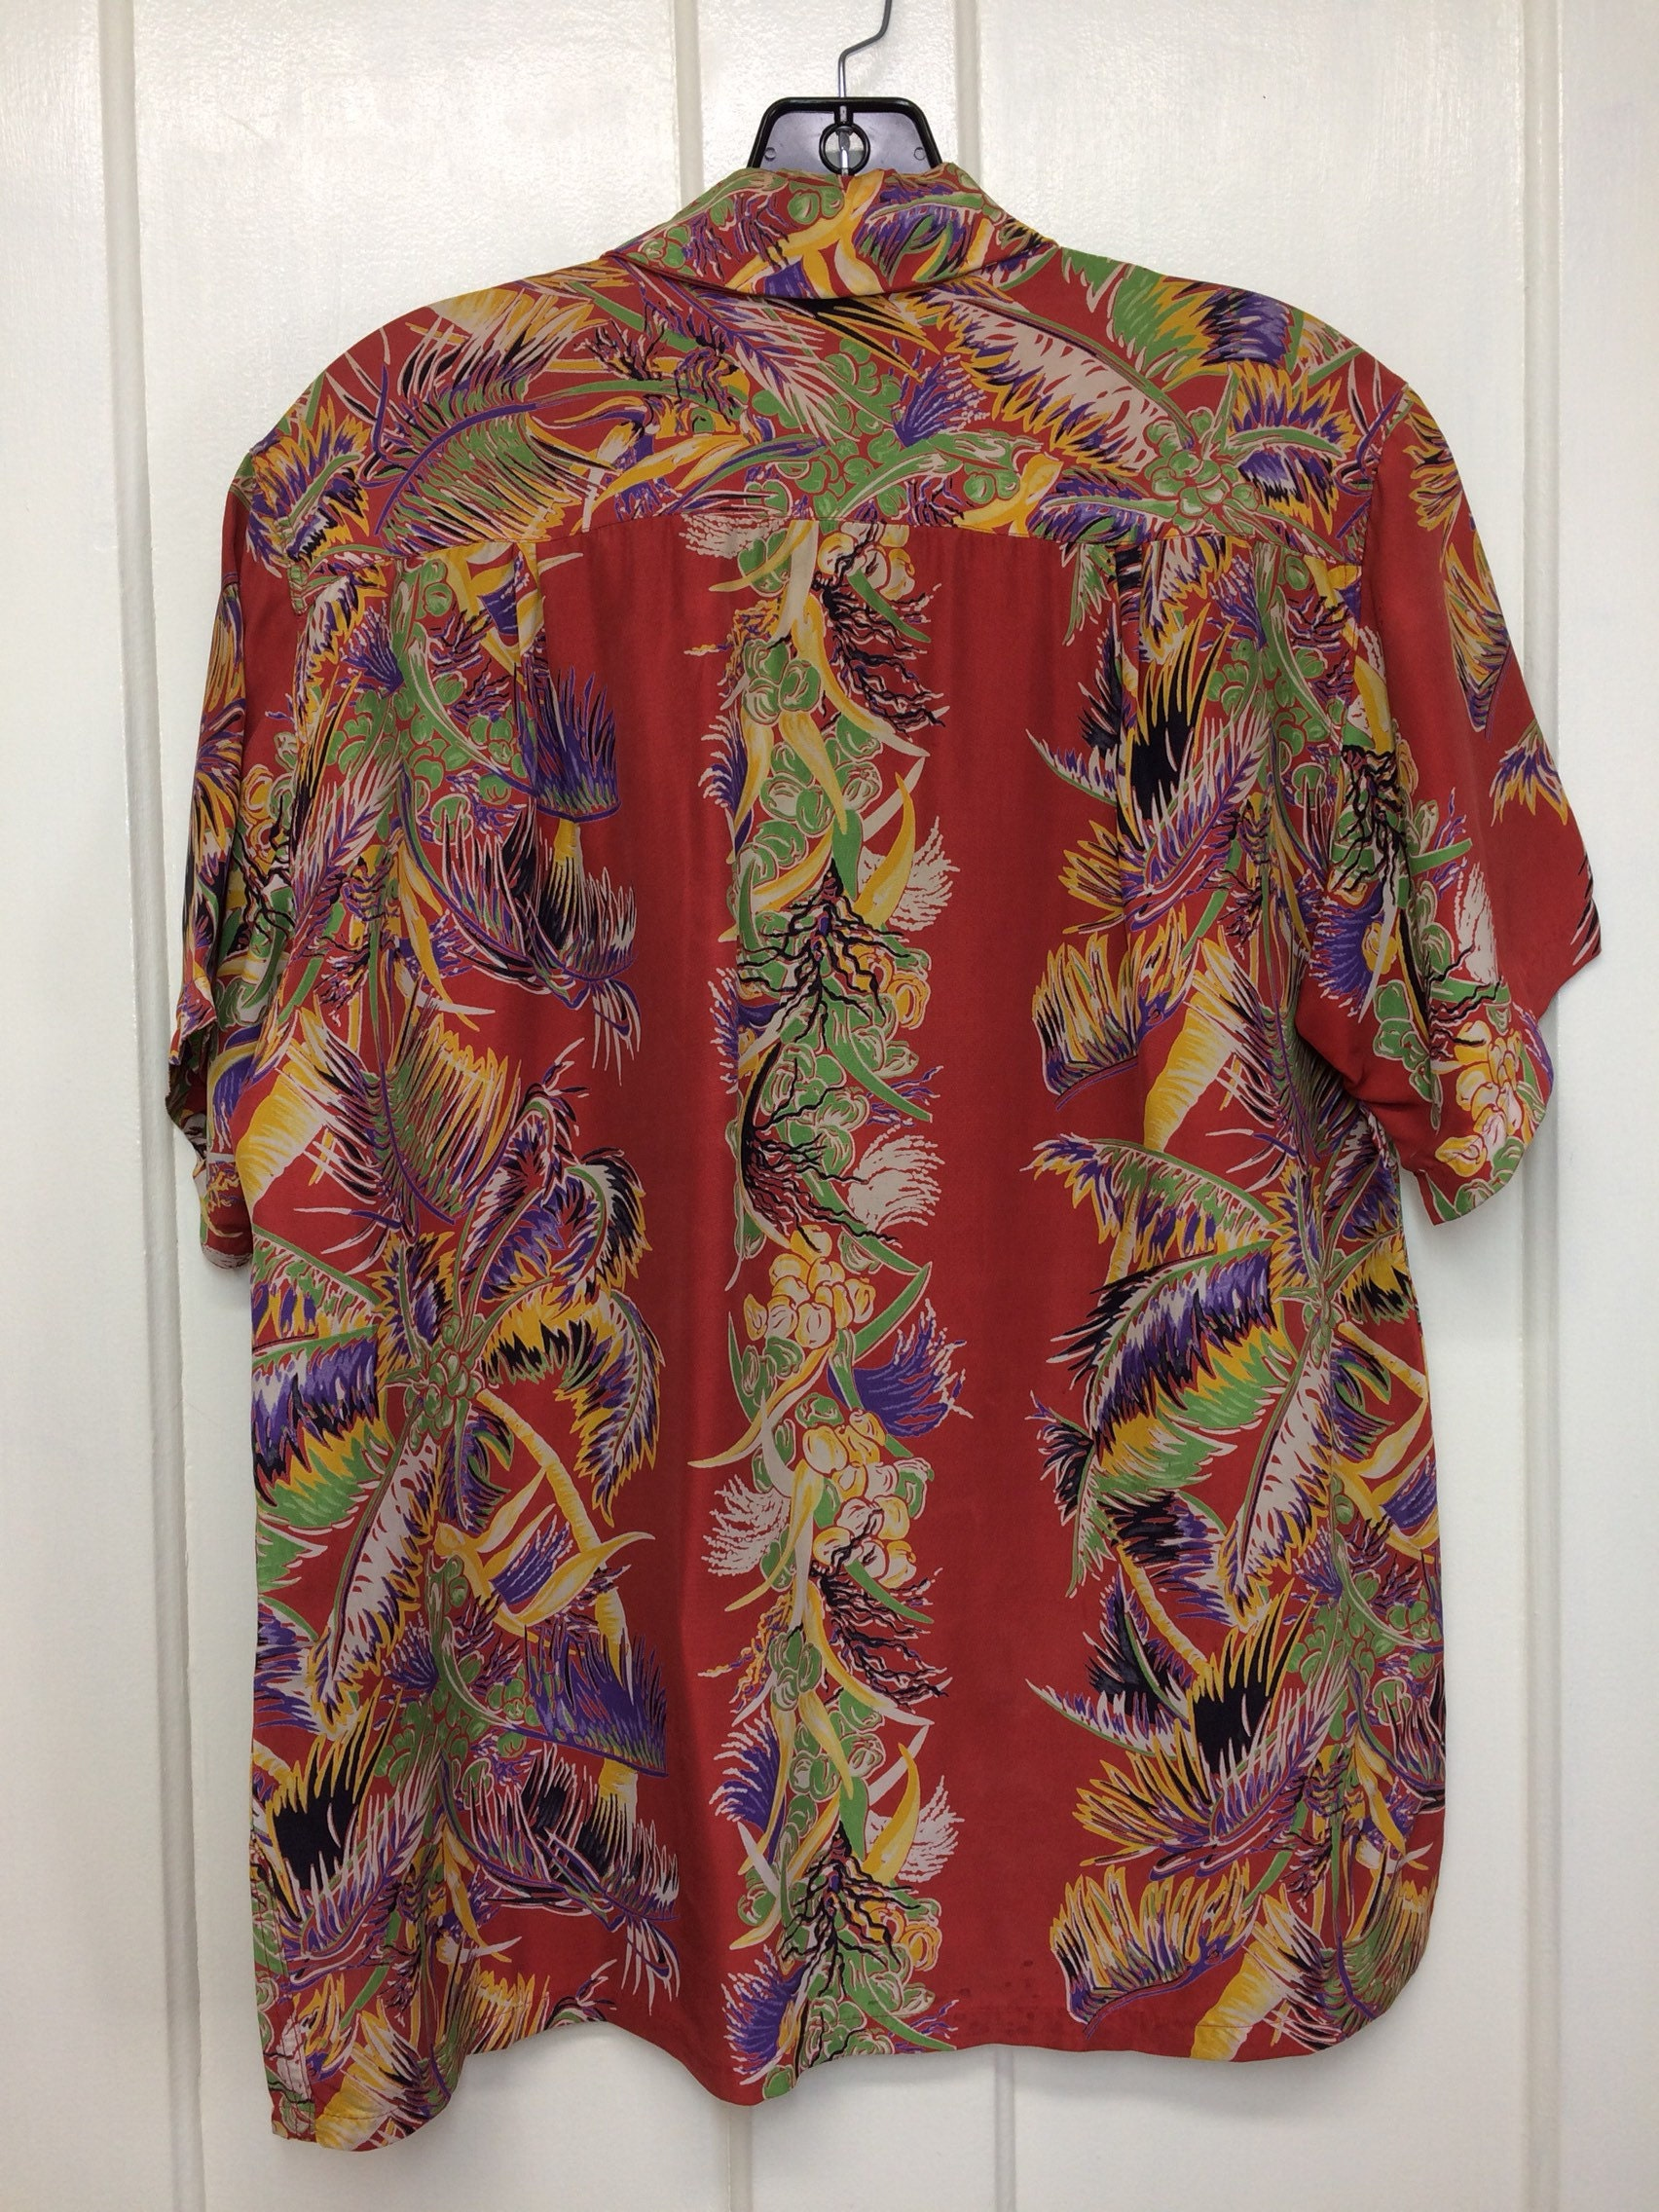 vintage Kamehameha Hawaiian border print shirt from 1950